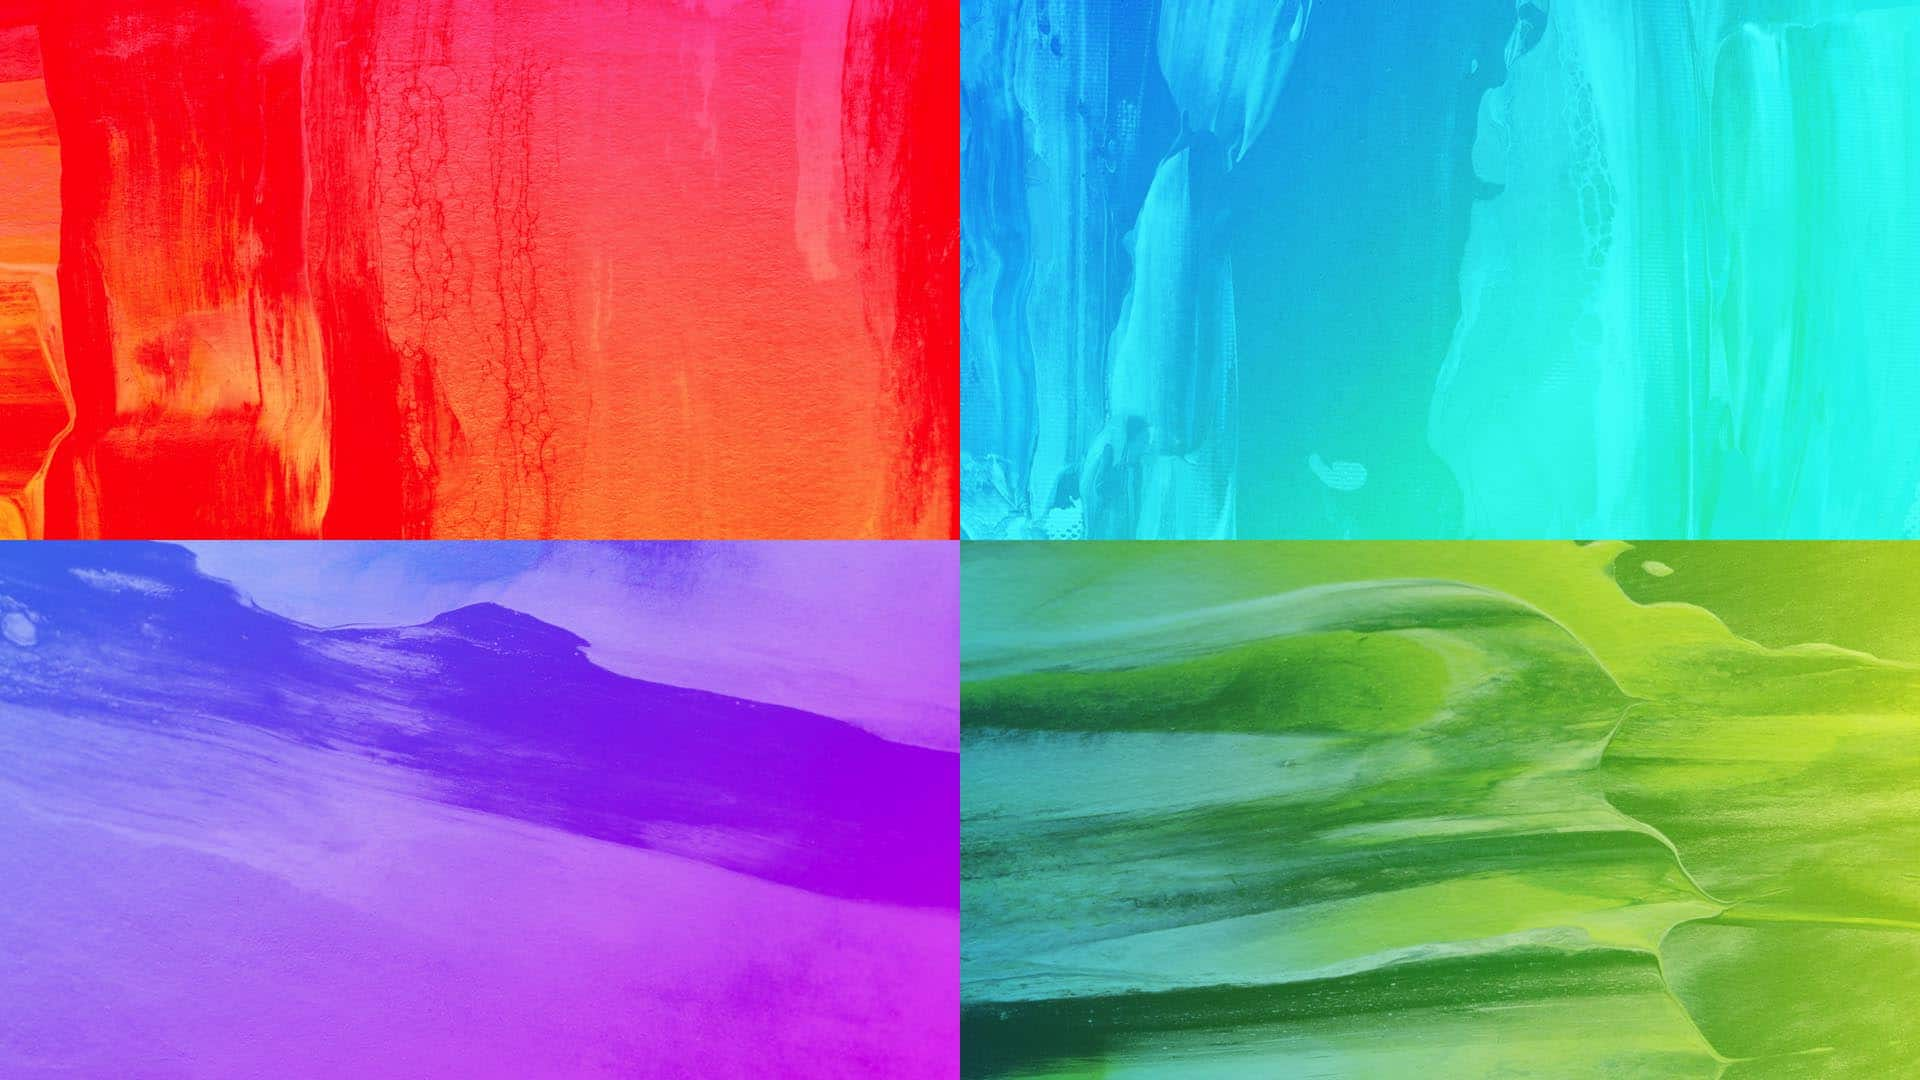 10 Free Hot Paint Gradient Stills